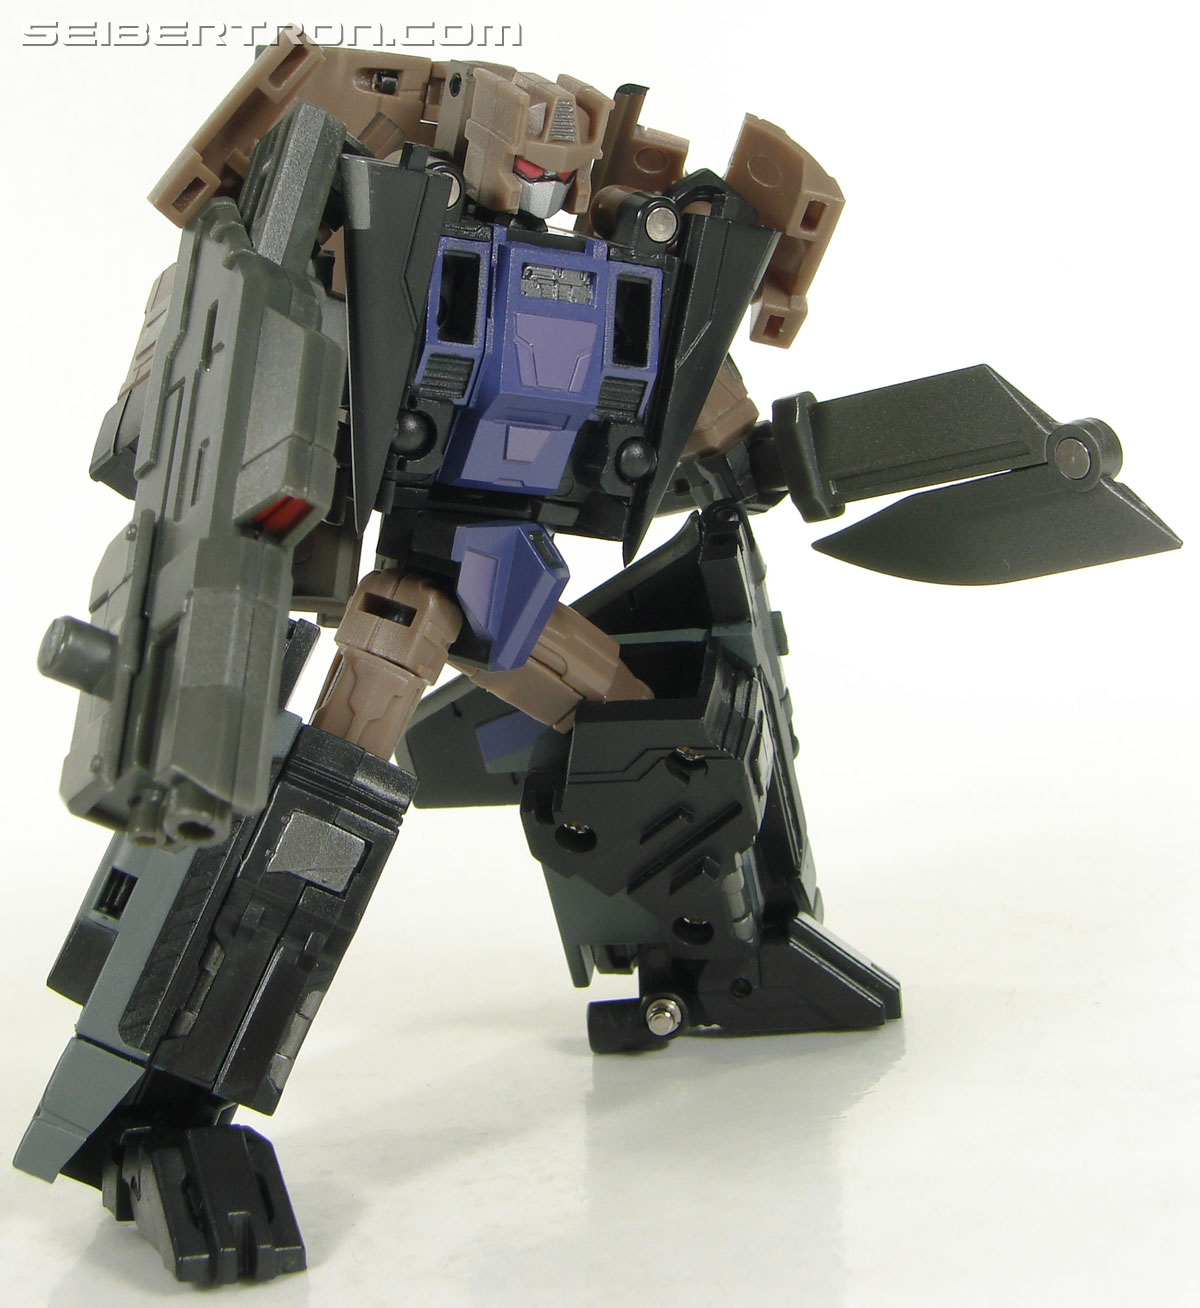 Transformers 3rd Party Products Crossfire 02A Combat Unit Explorer (Blast Off) (Image #119 of 164)